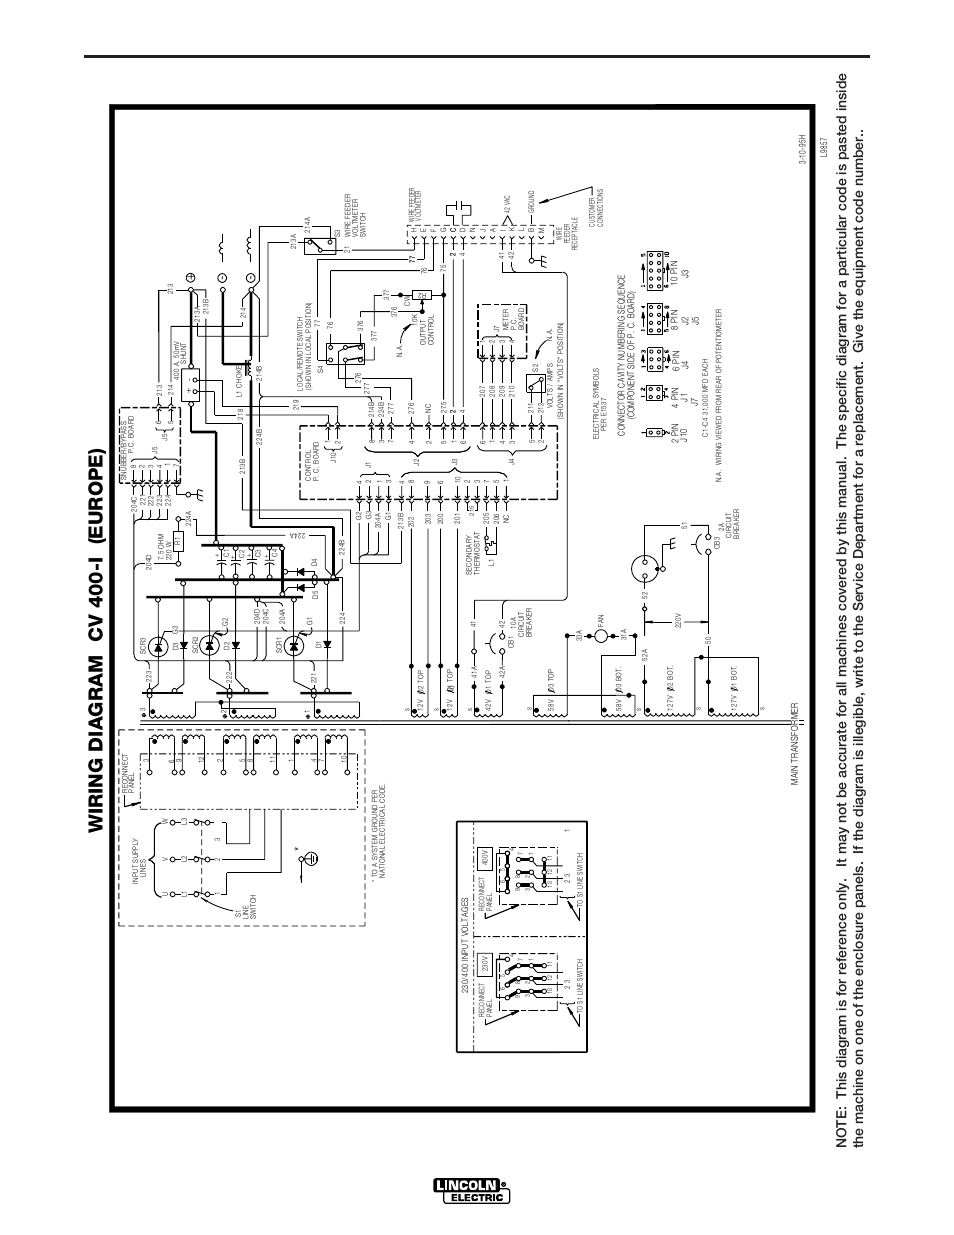 diagrams cv 400 i wiring diagram cv 400 i europe lincoln diagrams cv 400 i wiring diagram cv 400 i europe lincoln electric im501 idealarc cv400 i user manual page 30 44